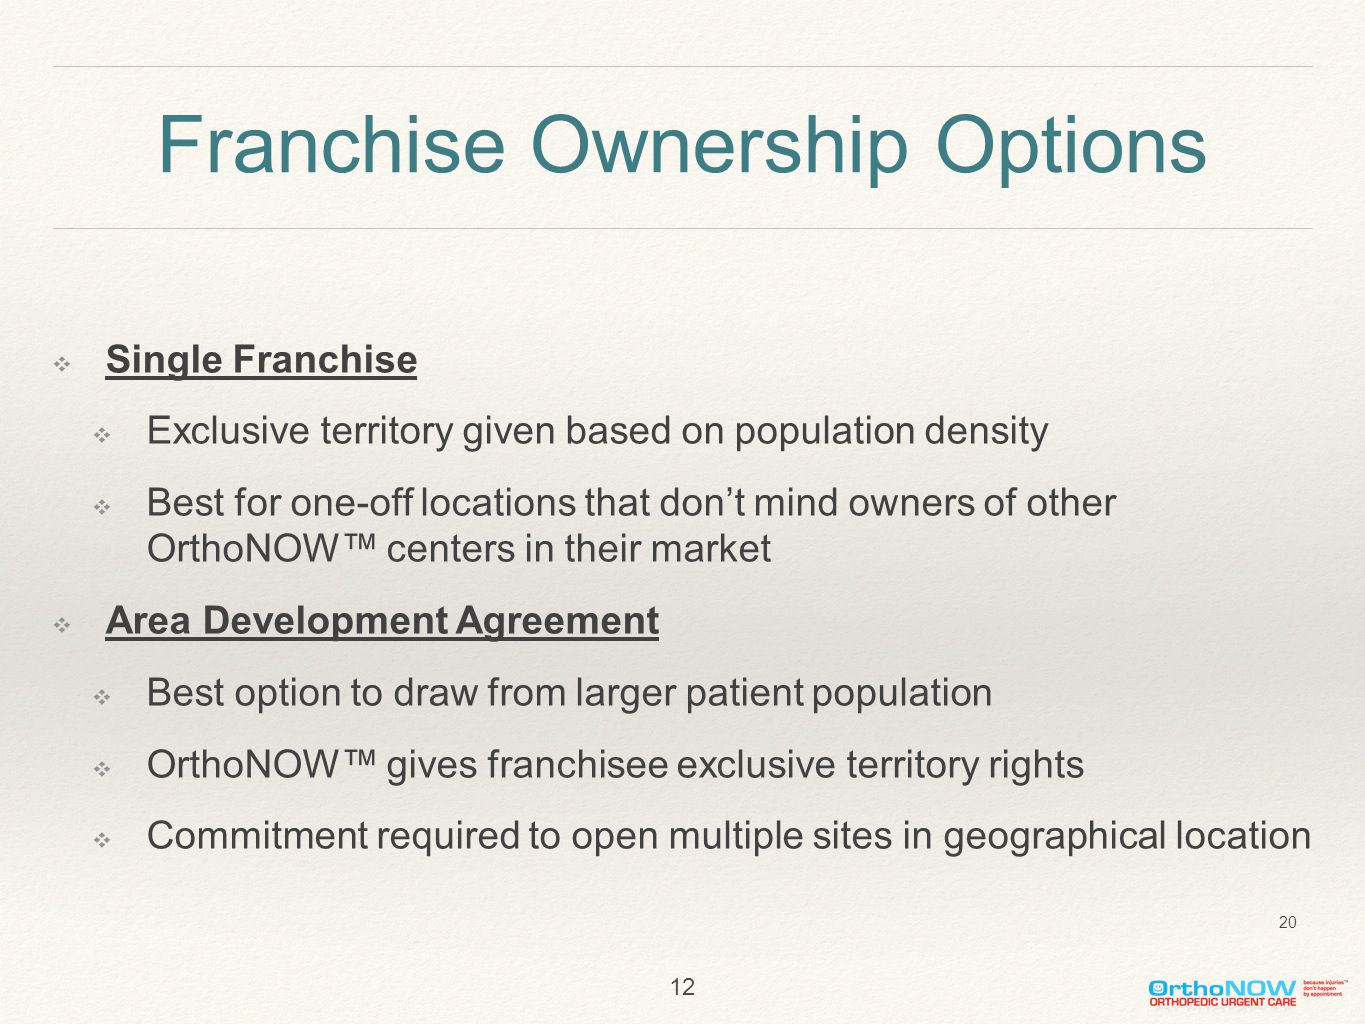 Franchise Ownership Options ❖ Single Franchise ❖ Exclusive territory given based on population density ❖ Best for one-off locations that don't mind owners of other OrthoNOW™ centers in their market ❖ Area Development Agreement ❖ Best option to draw from larger patient population ❖ OrthoNOW™ gives franchisee exclusive territory rights ❖ Commitment required to open multiple sites in geographical location 12 20